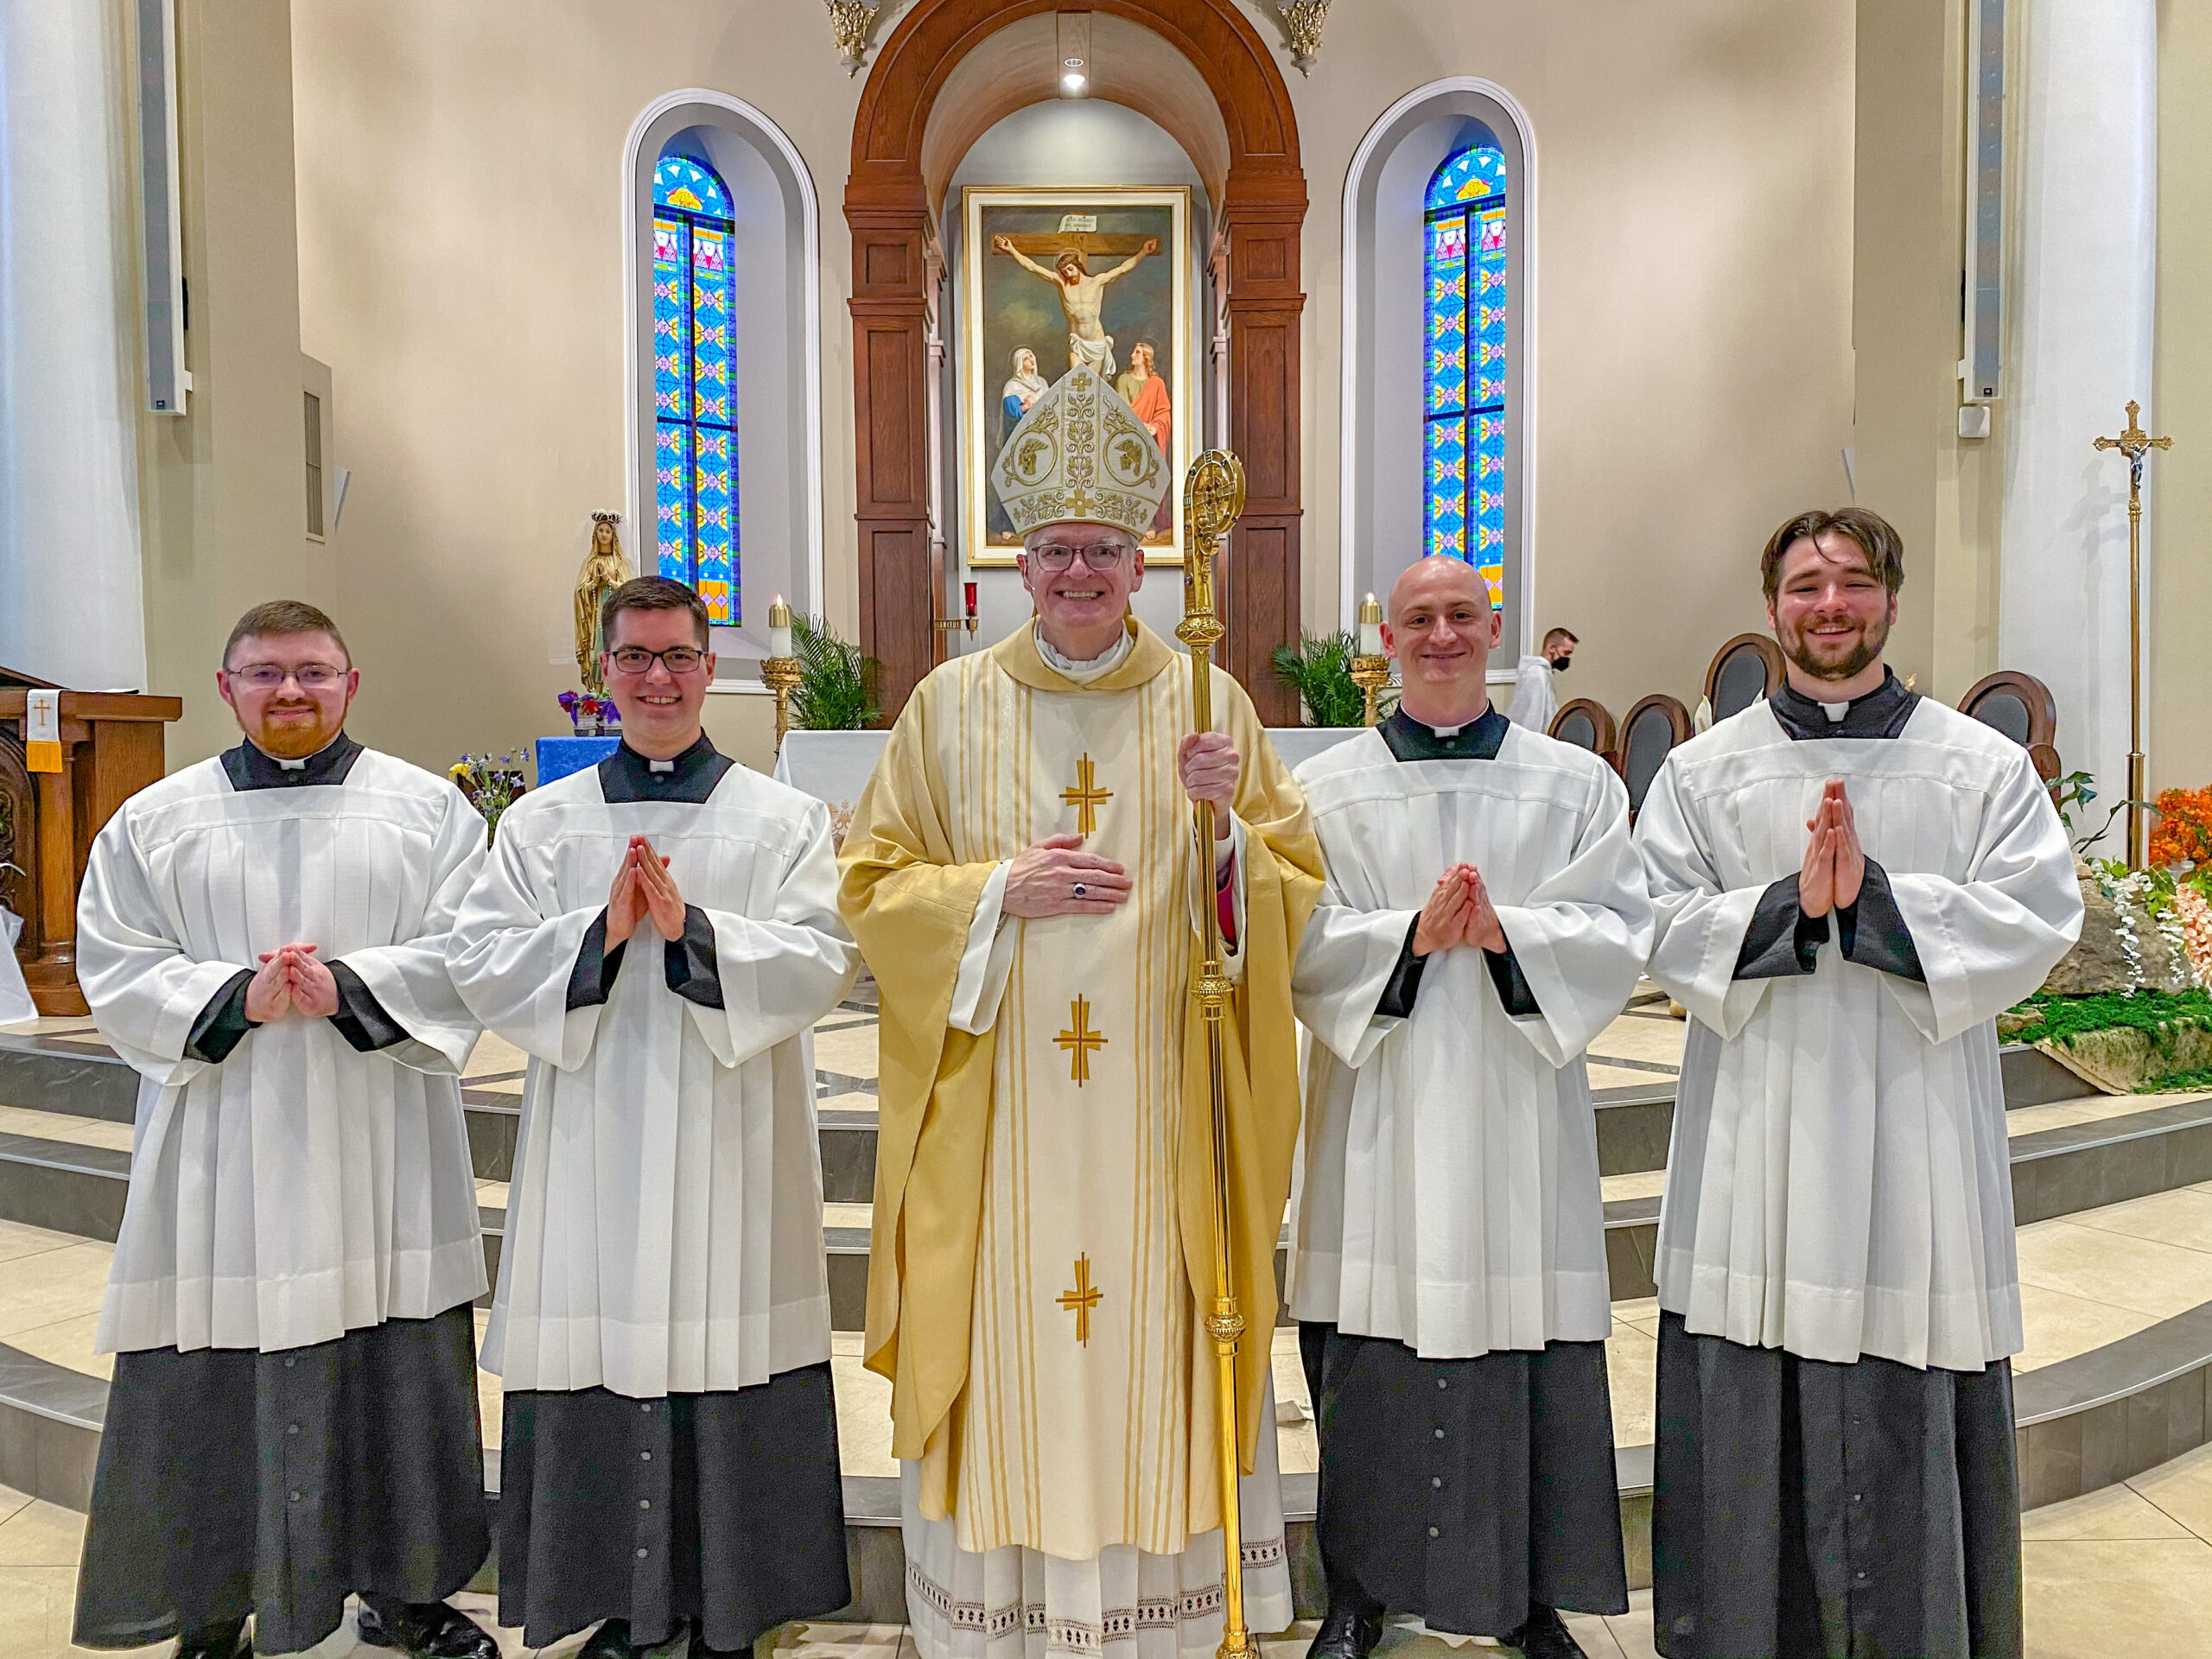 Bishop Joseph M. Siegel celebrated a Mass of Candidacy on May 6 for four Diocese of Evansville seminarians, formally recognizing them as candidates for ordination to the priesthood. Shown after the Mass hosted by Christ the King Parish's St. Ferdinand Church in Ferdinand, are Seminarian Nick Biever, a son of Annunciation Parish of Evansville; Seminarian Philip Rogier, a son of Christ the King Parish; Bishop Siegel, Seminarian Clint Johnson, a son of Holy Cross Parish in Fort Branch; and Aaron Herrenbruck, a son of St. Clement Parish in Boonville. Rogier begins Second Theology this fall. Biever, Herrenbruck and Johnson begin First Theology in the fall. Submitted photo